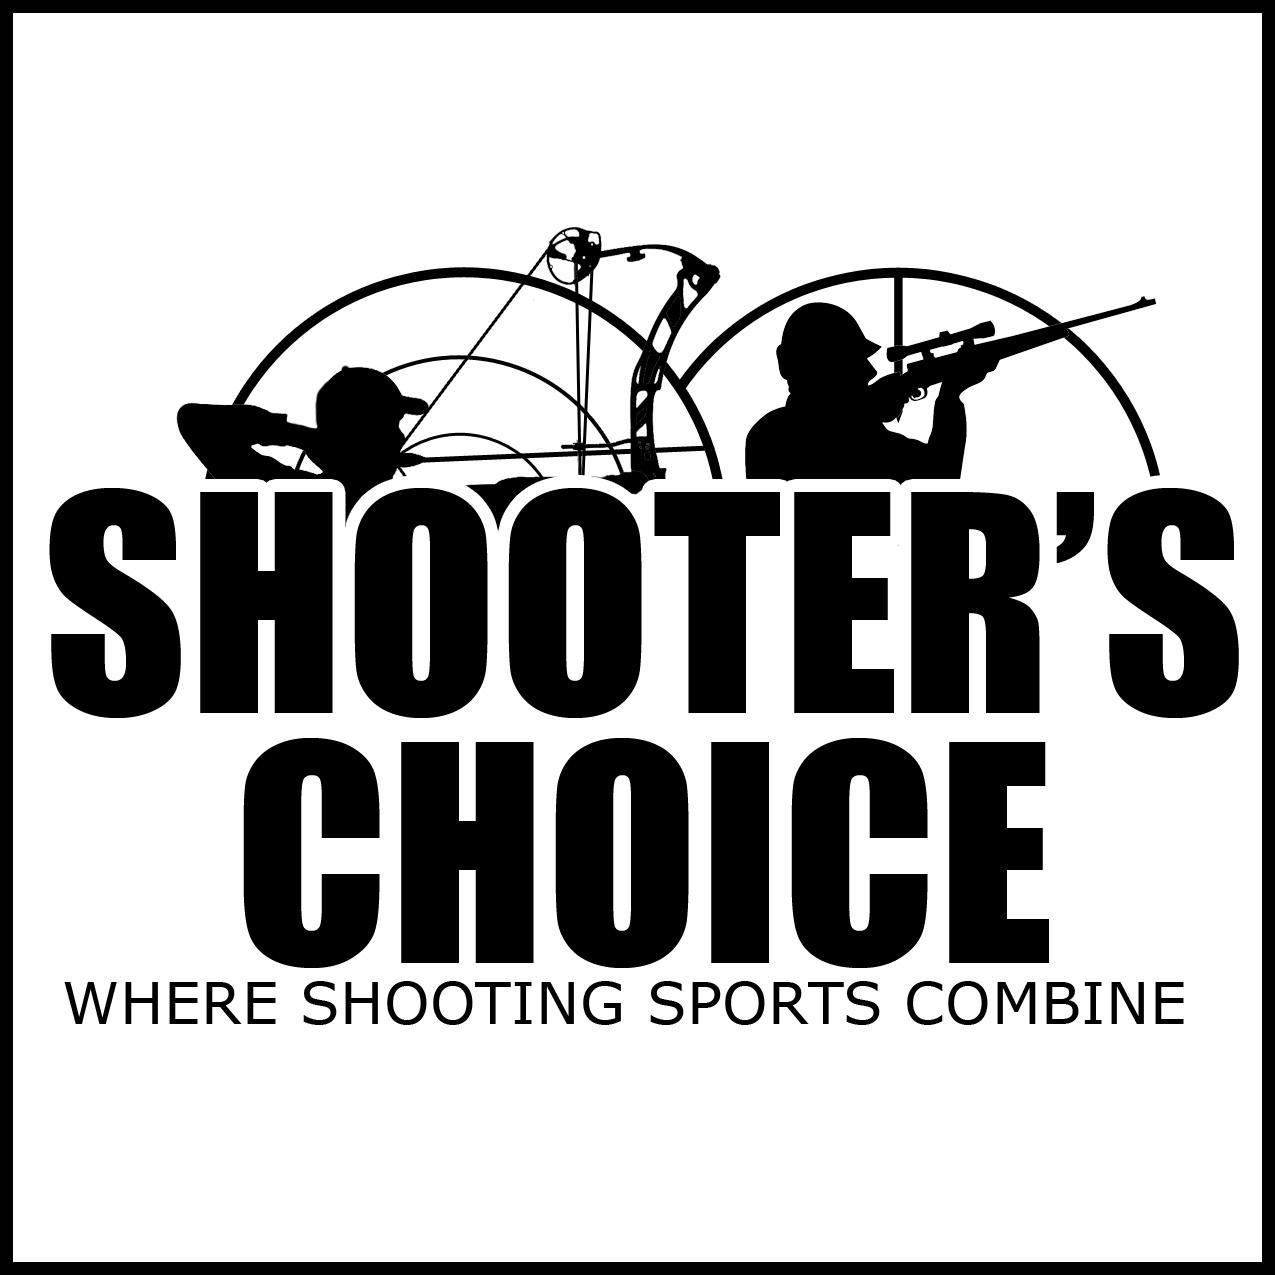 Shooters Choice ShootersChoice